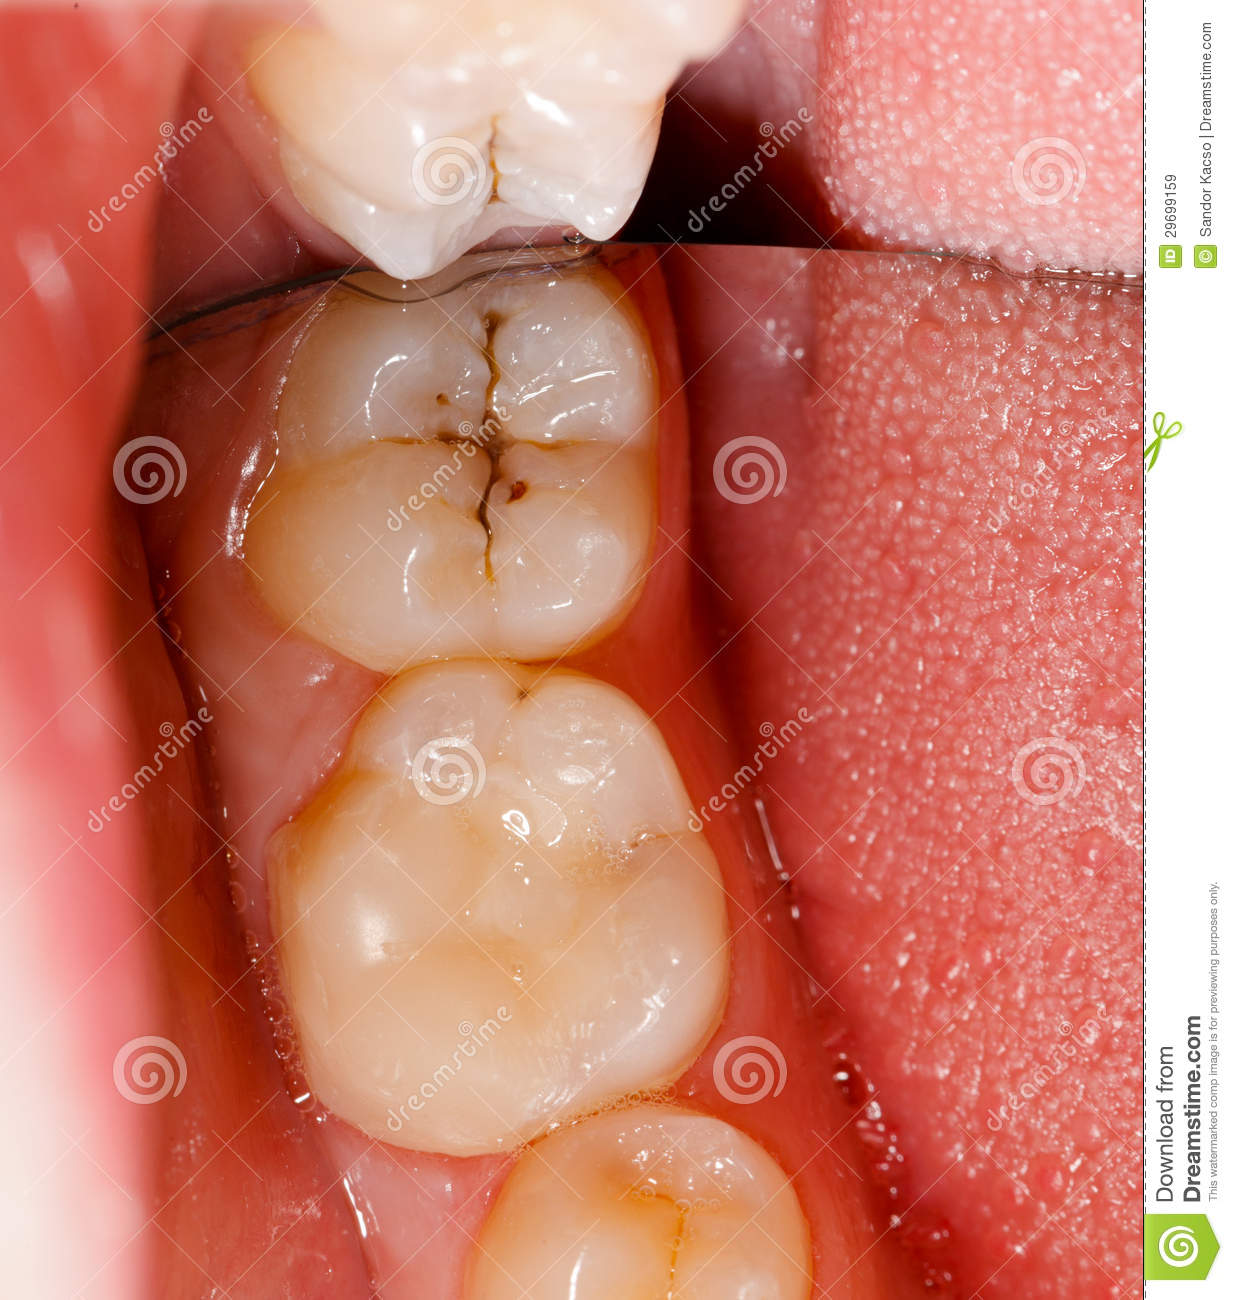 cavity and teeth stock image image of decay bacterial 29699159